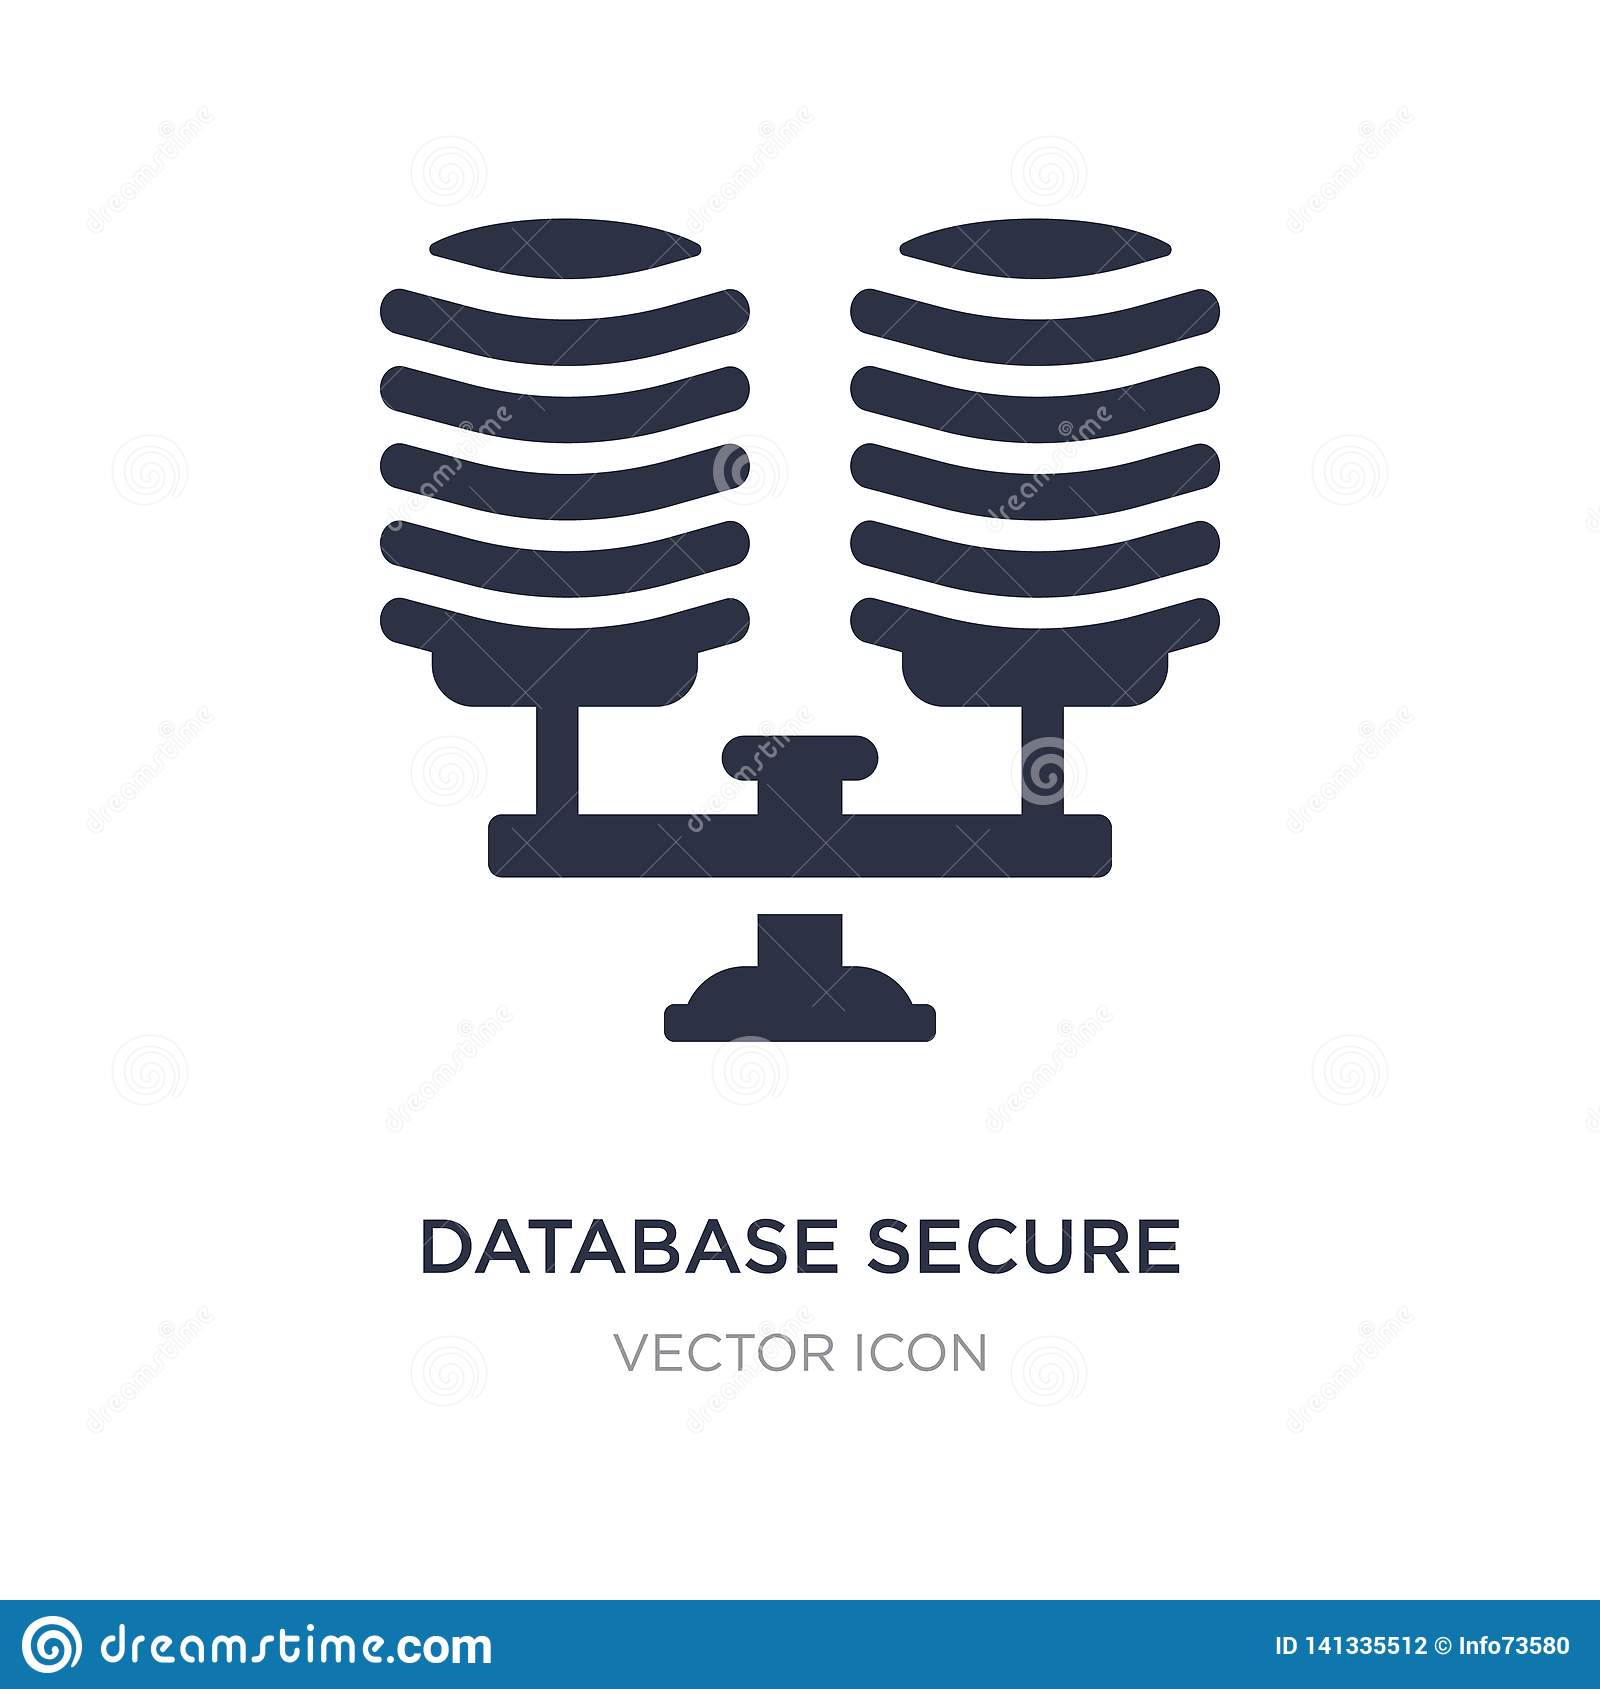 database secure connection icon on white background. Simple element illustration from Technology concept